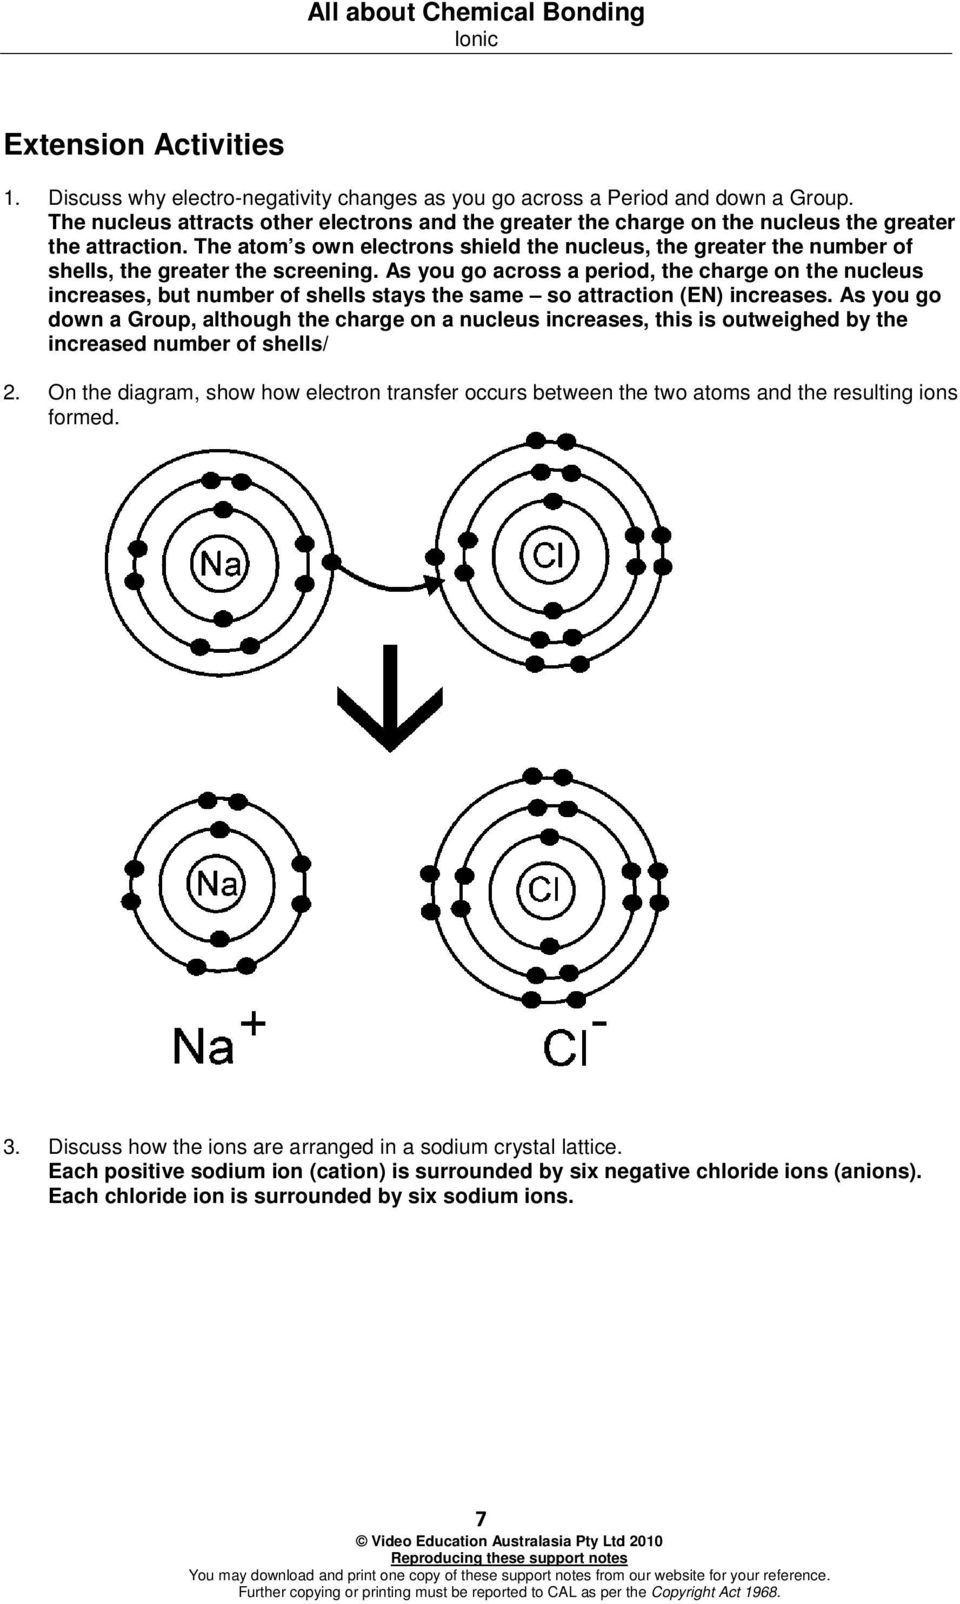 The atom s own electrons shield the nucleus, the greater the number of shells, the greater the screening.